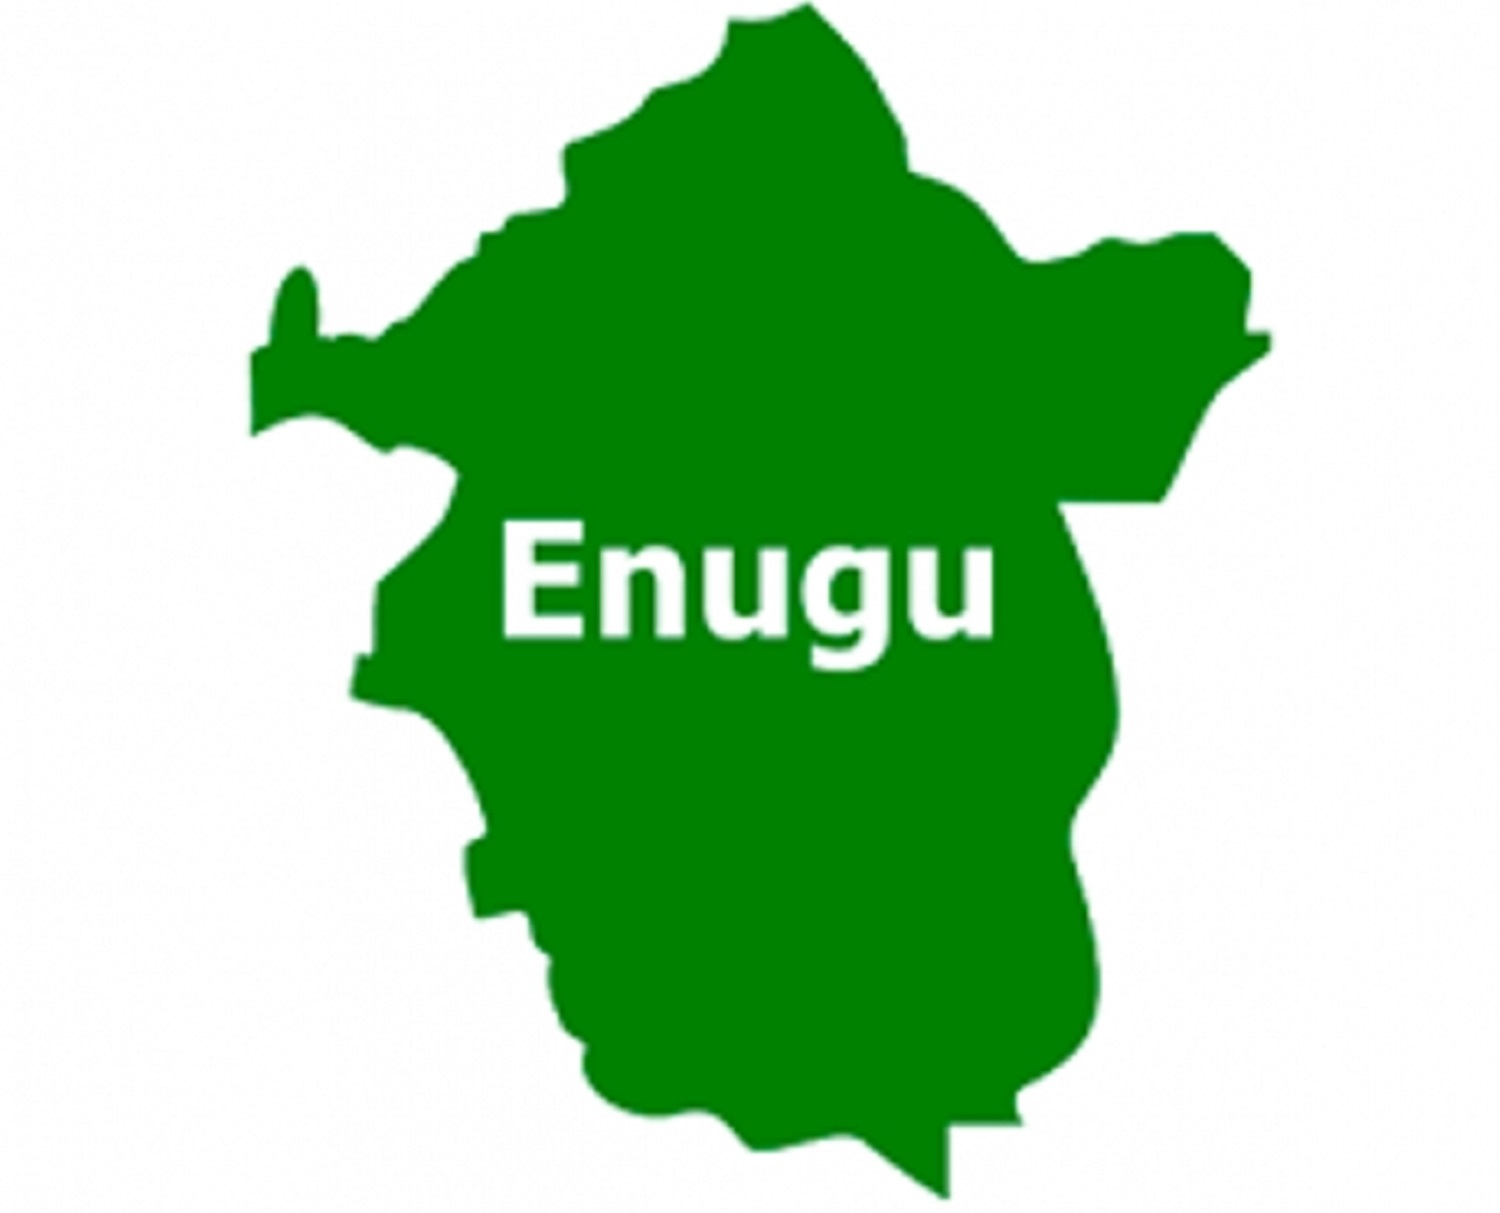 ENUGU: Where water is gold